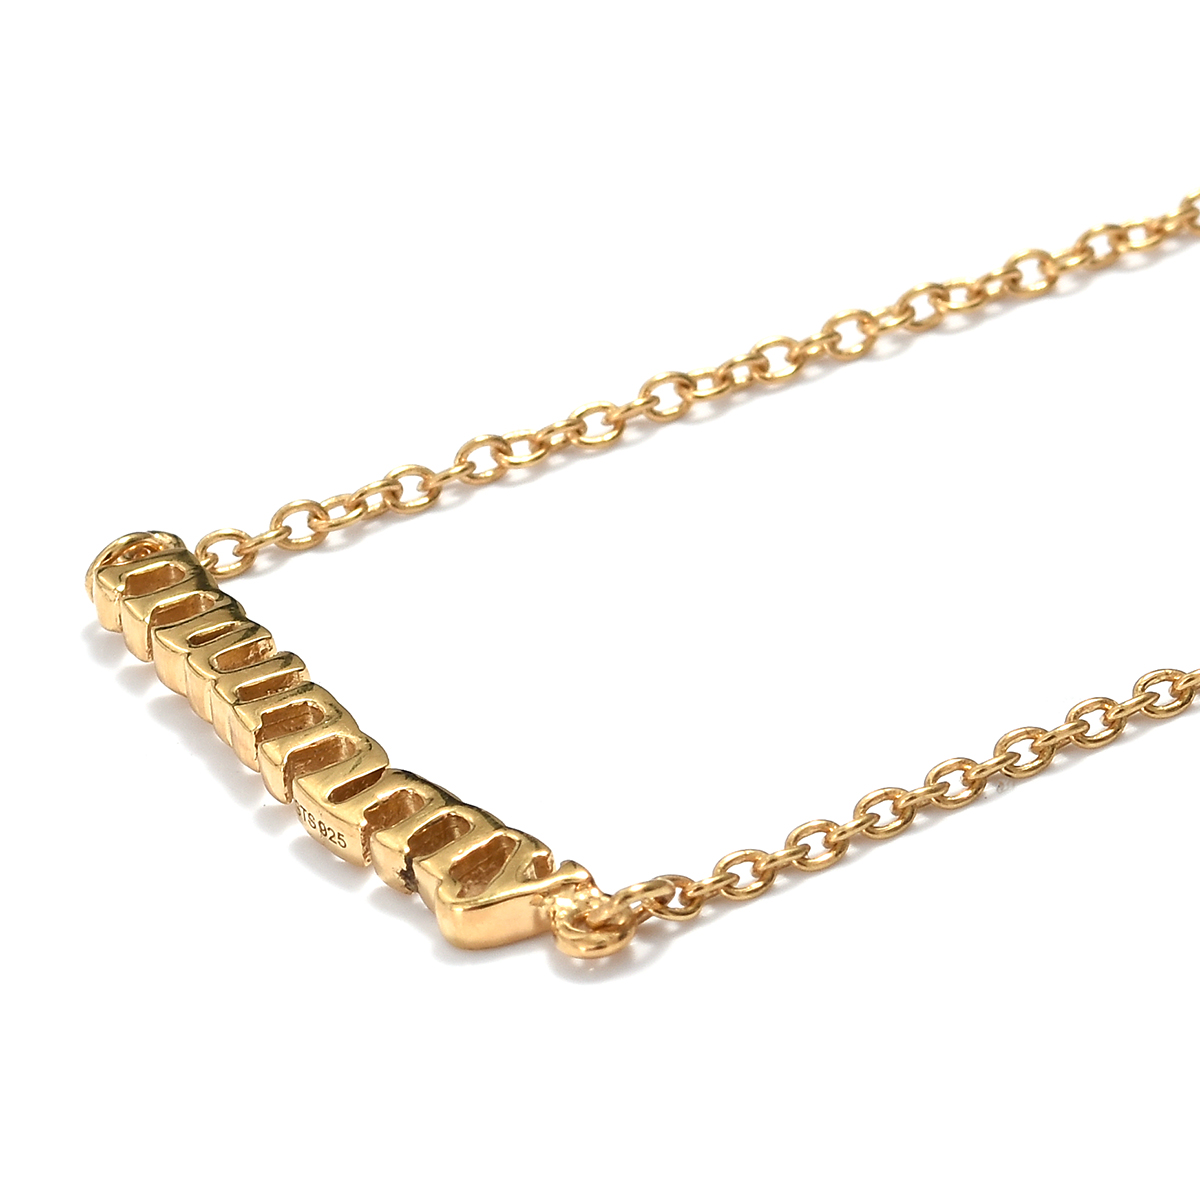 14K-Meghan-Markle-Yellow-Gold-Platinum-Over-Sterling-Silver-MUMMY-Chain-Necklace thumbnail 18